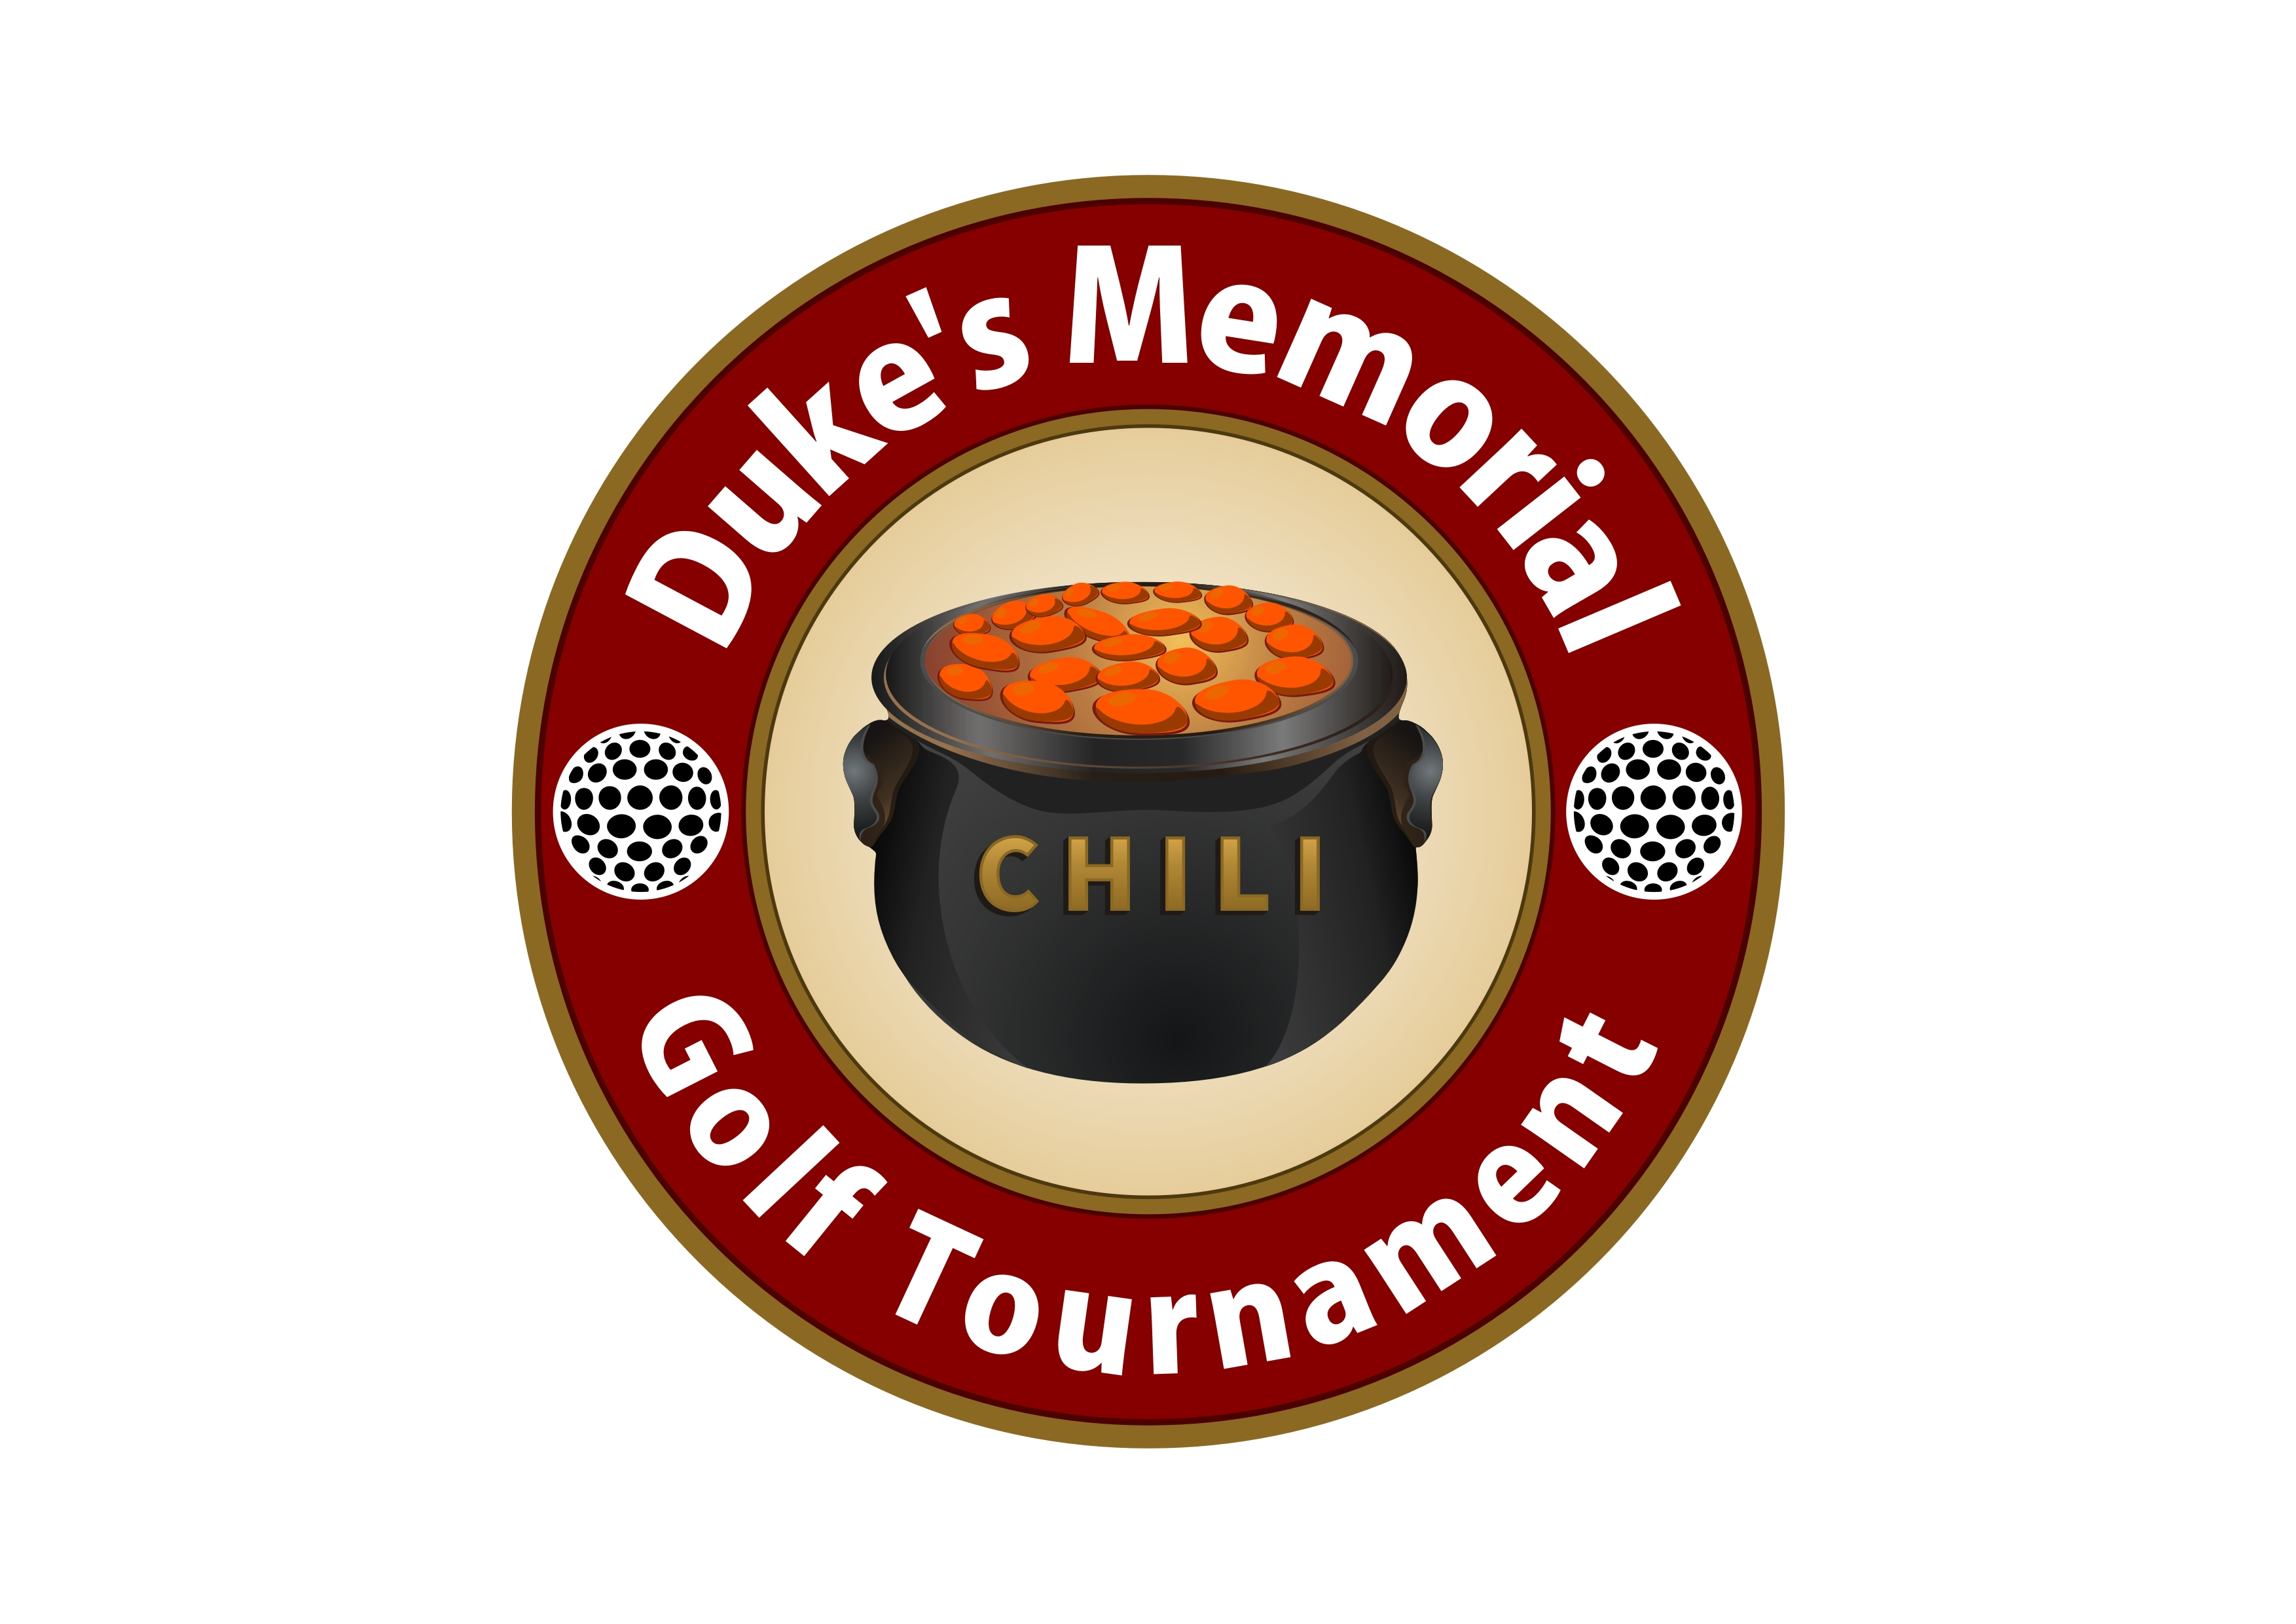 Duke's Memorial Golf Tournament.jpg